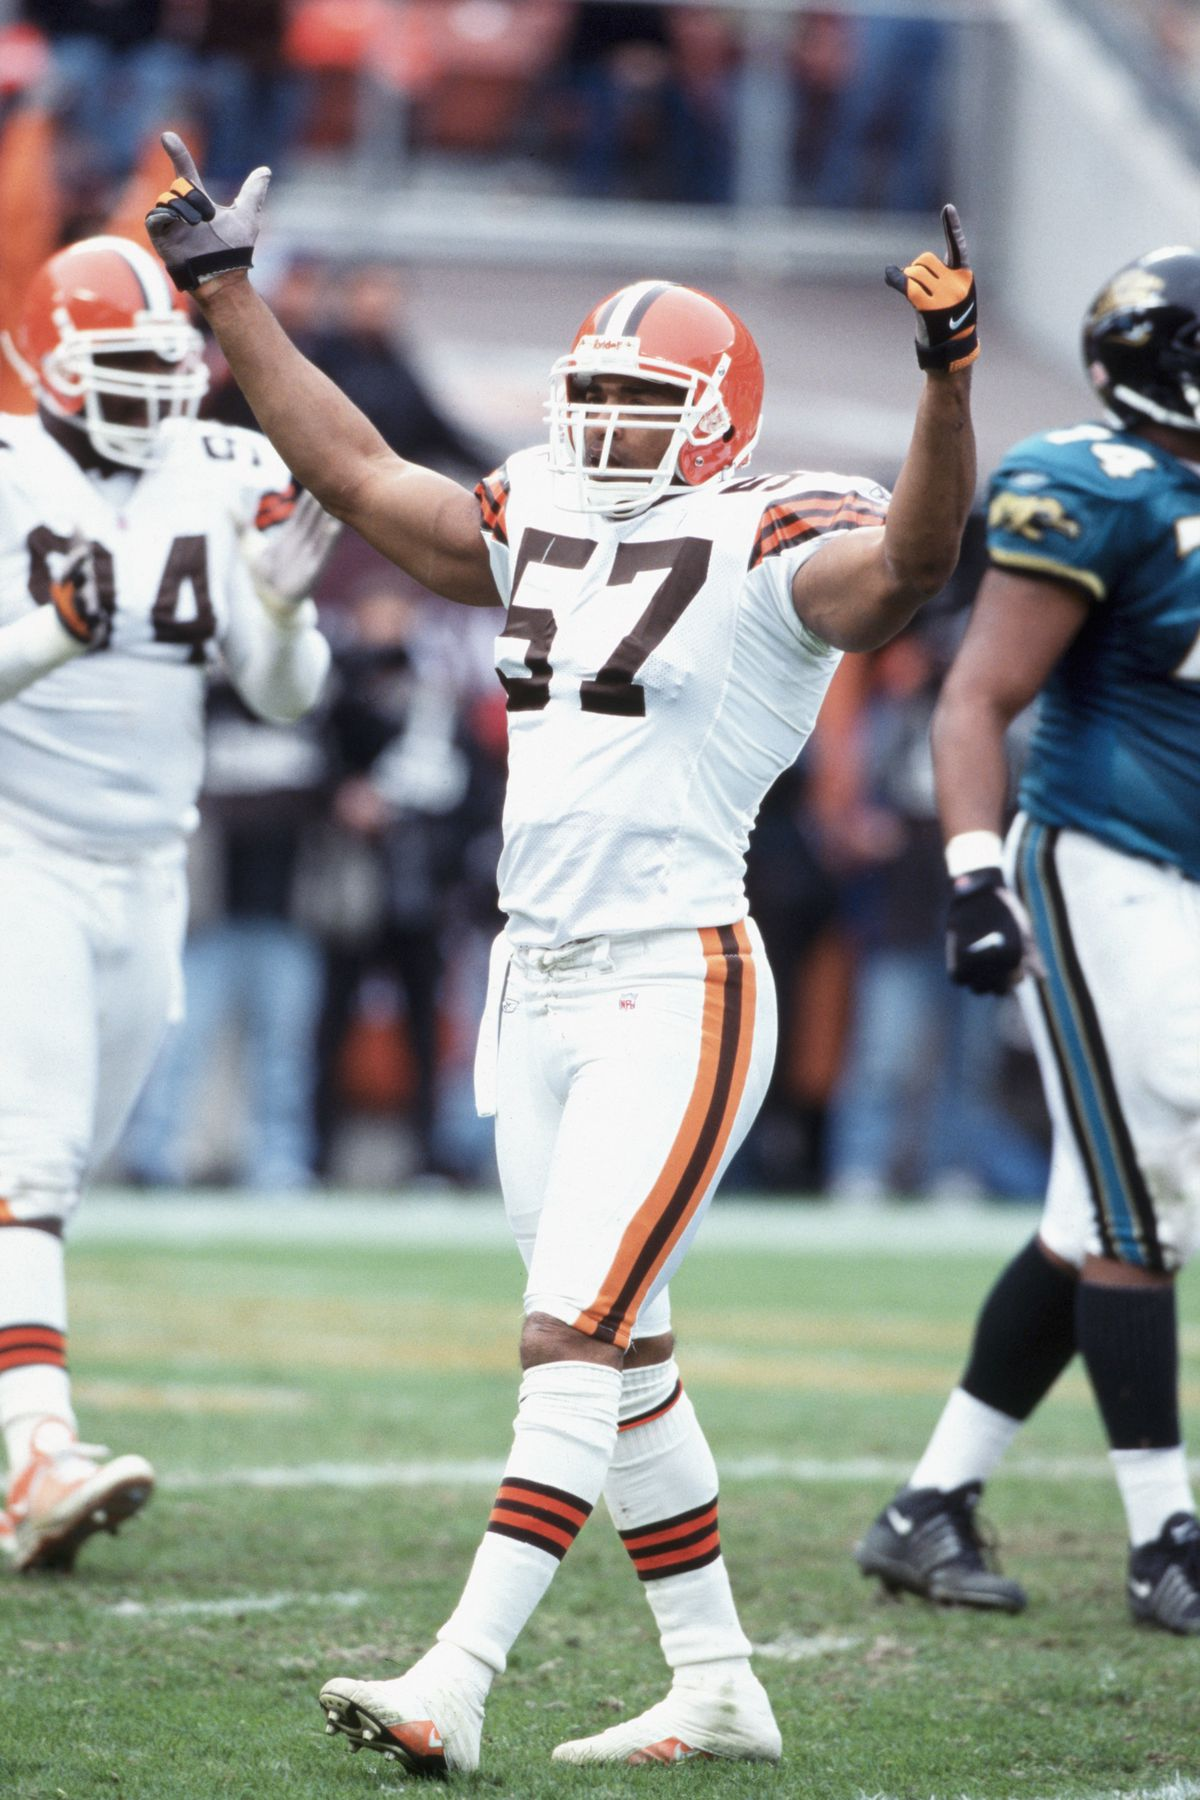 Dwayne Rudd #57 of the Cleveland Browns